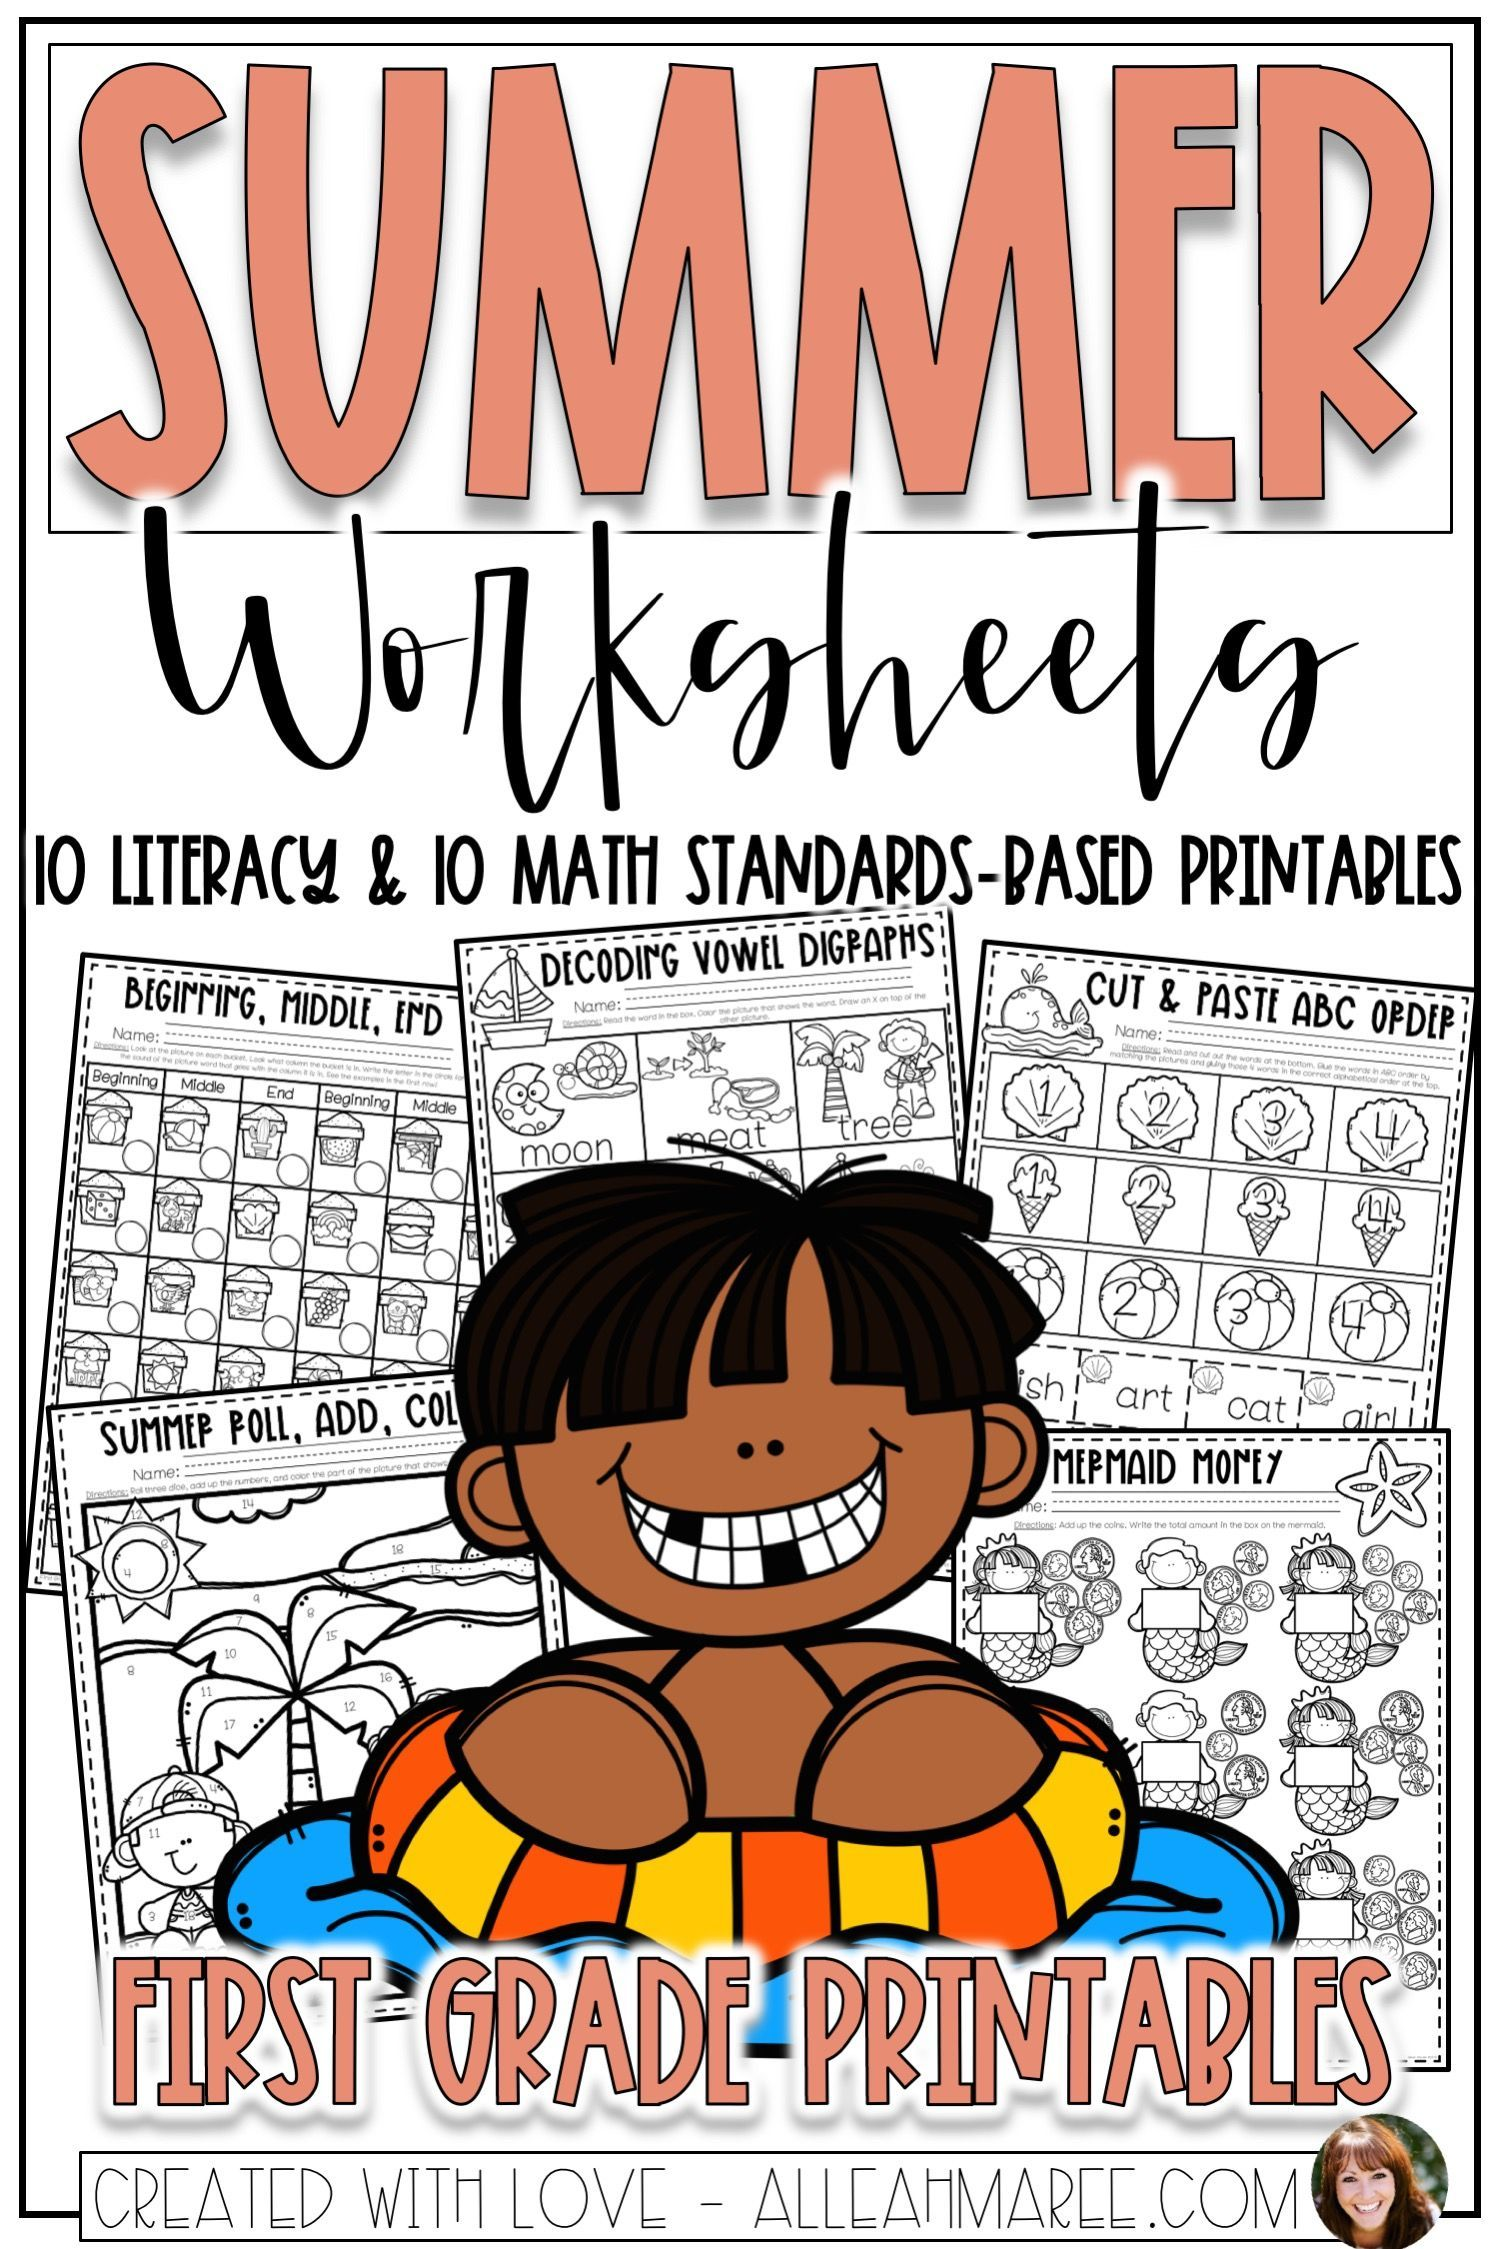 Summer Worksheets For First Grade Literacy And Math